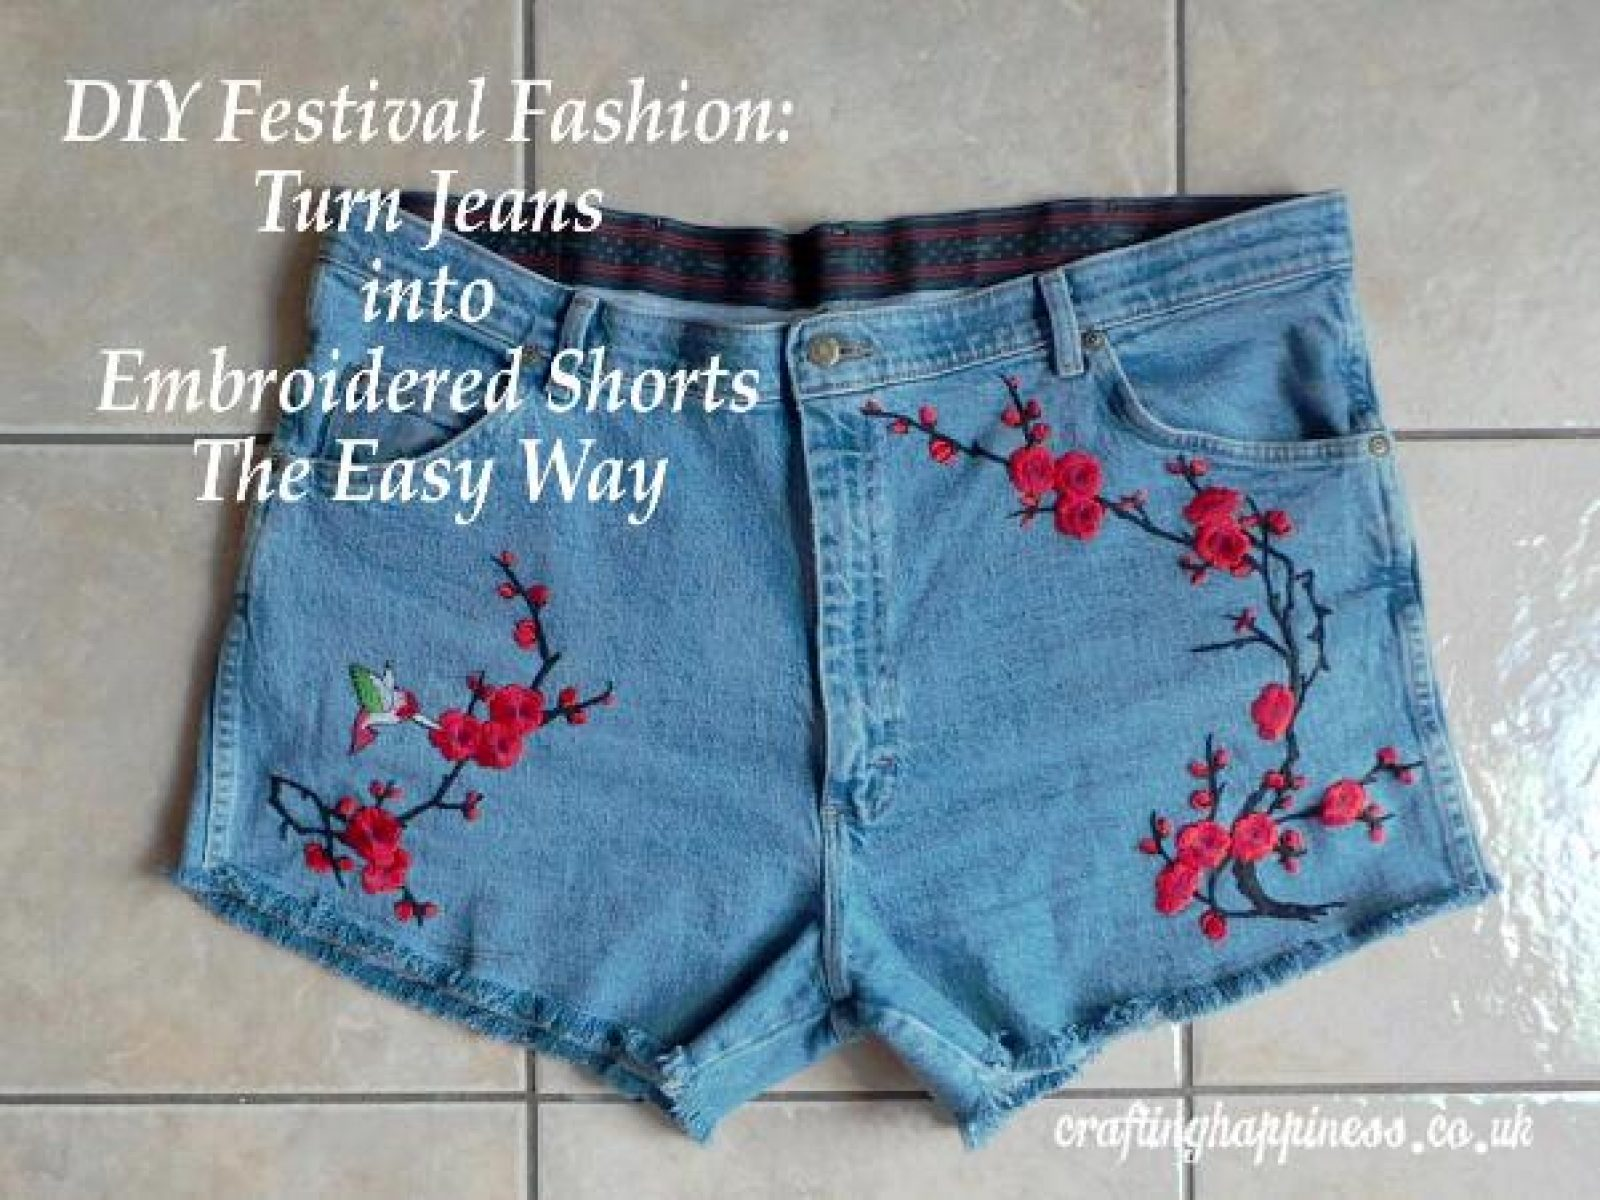 DIY Festival Fashion: Turn Jeans into Embroidered Shorts The Easy Way